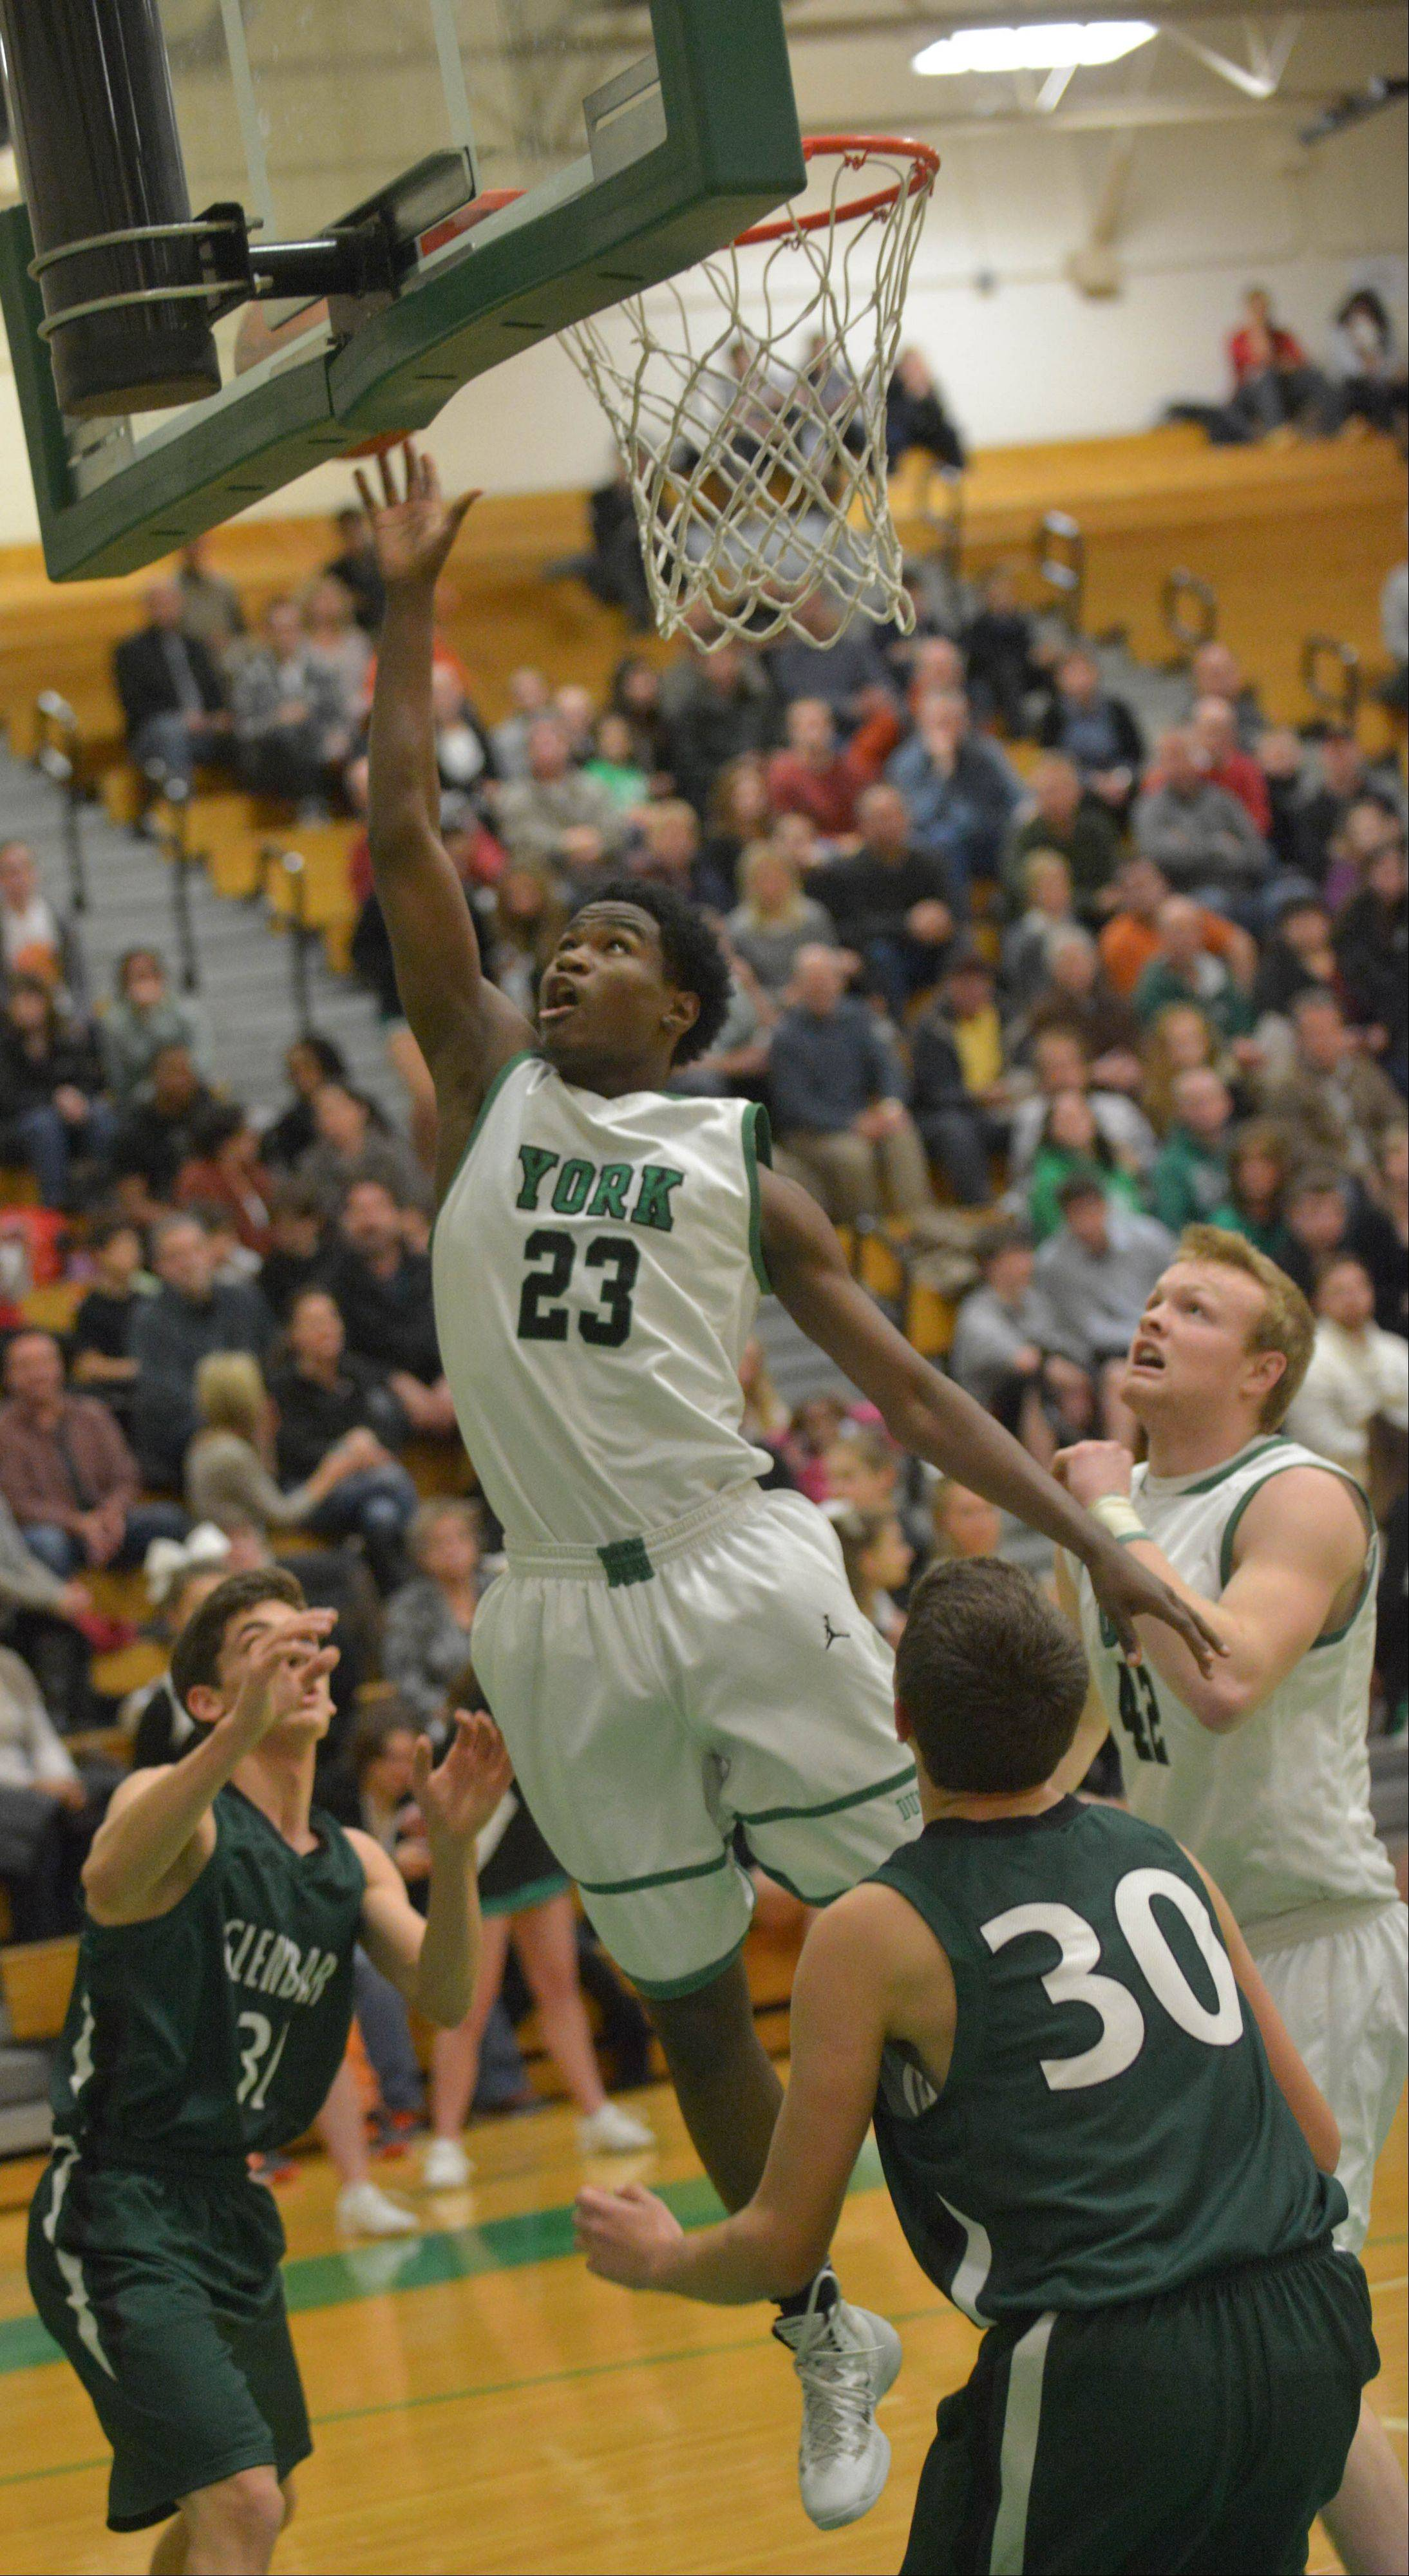 Jayvon Thomas of York takes one to the net during the Glenbard West at York boys basketball game Friday.